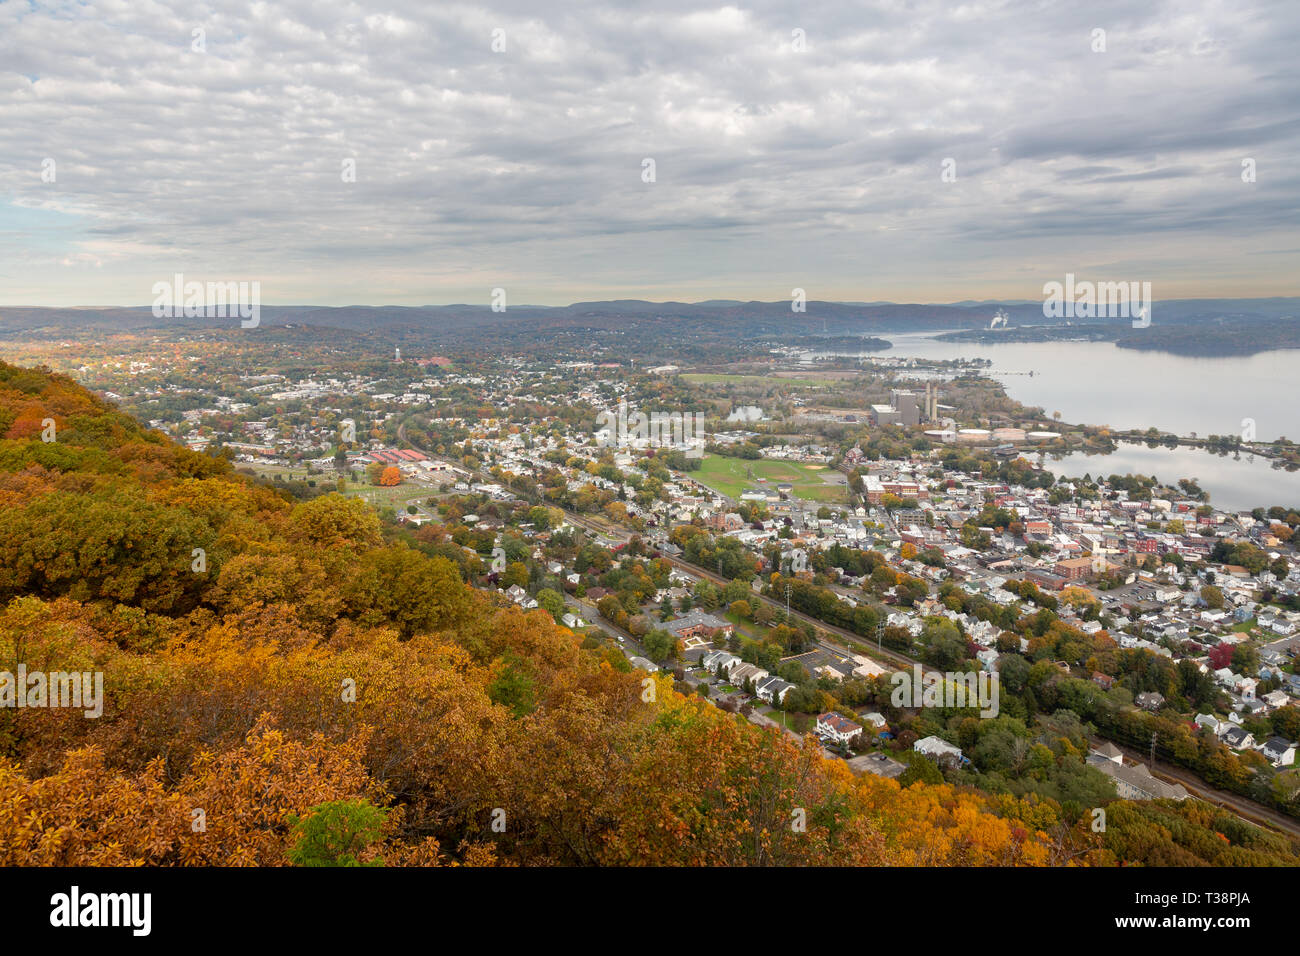 The town of Haverstraw along the Hudson River lying below High Tor Peak along the Hudson River Palisades. High Tor State Park, New York - Stock Image